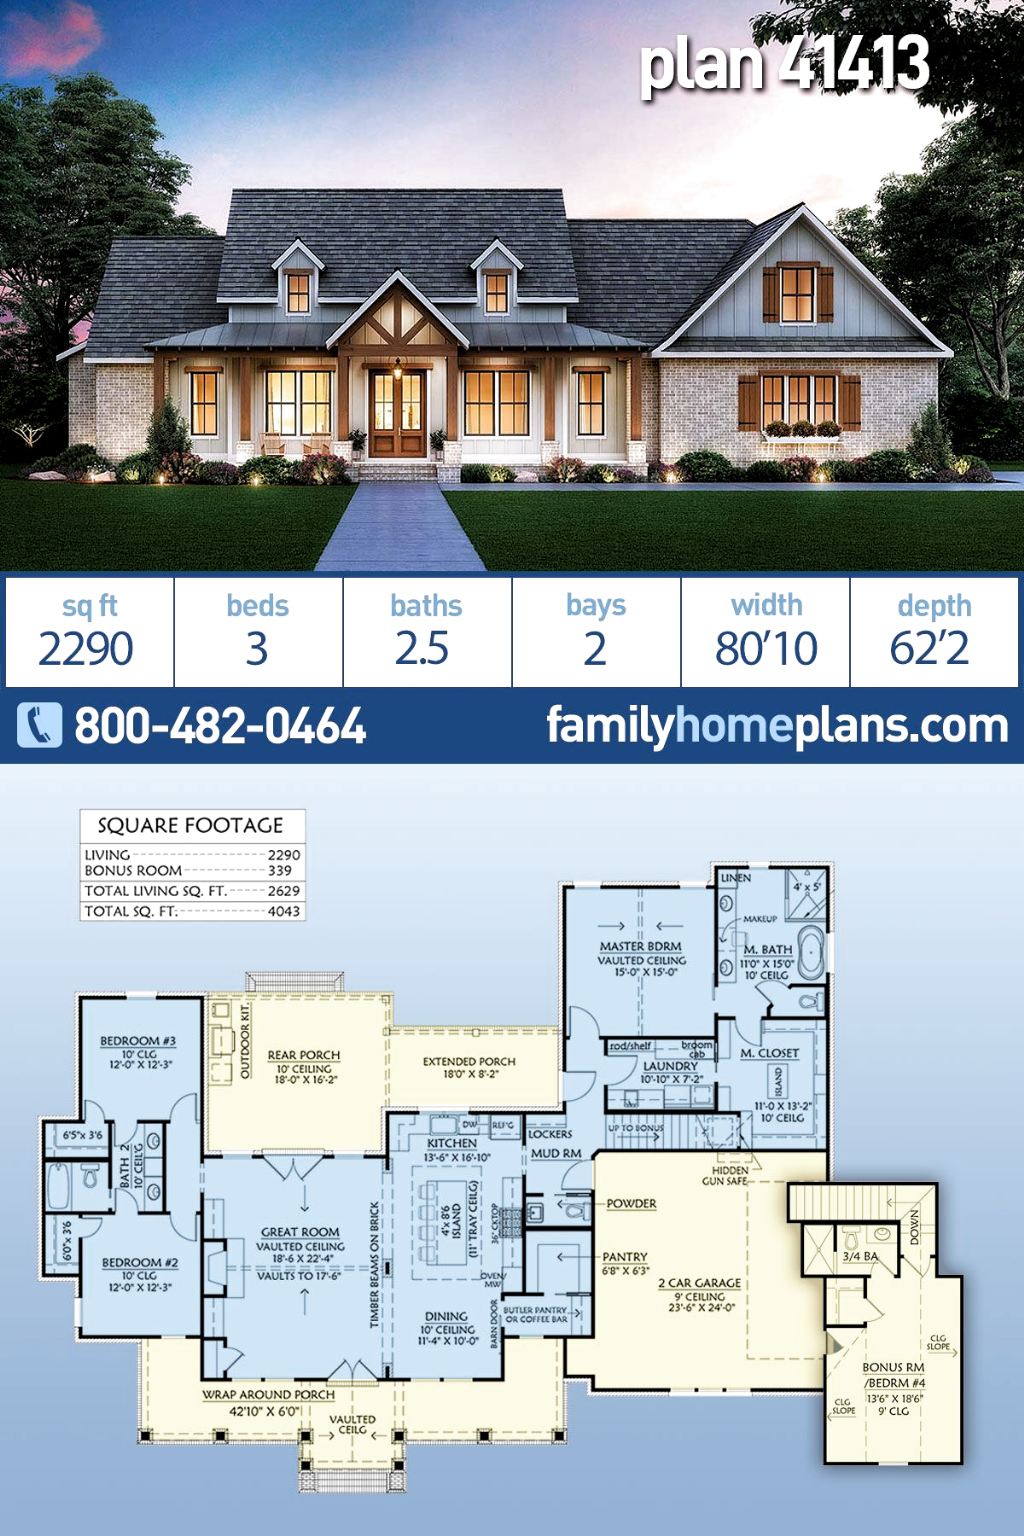 Elegant Farmhouse Home Plan With Just Almost 2300 Square Feet Of Heated Living Sp Craftsman Style House Plans Craftsman House Plans Farmhouse Style House Plans